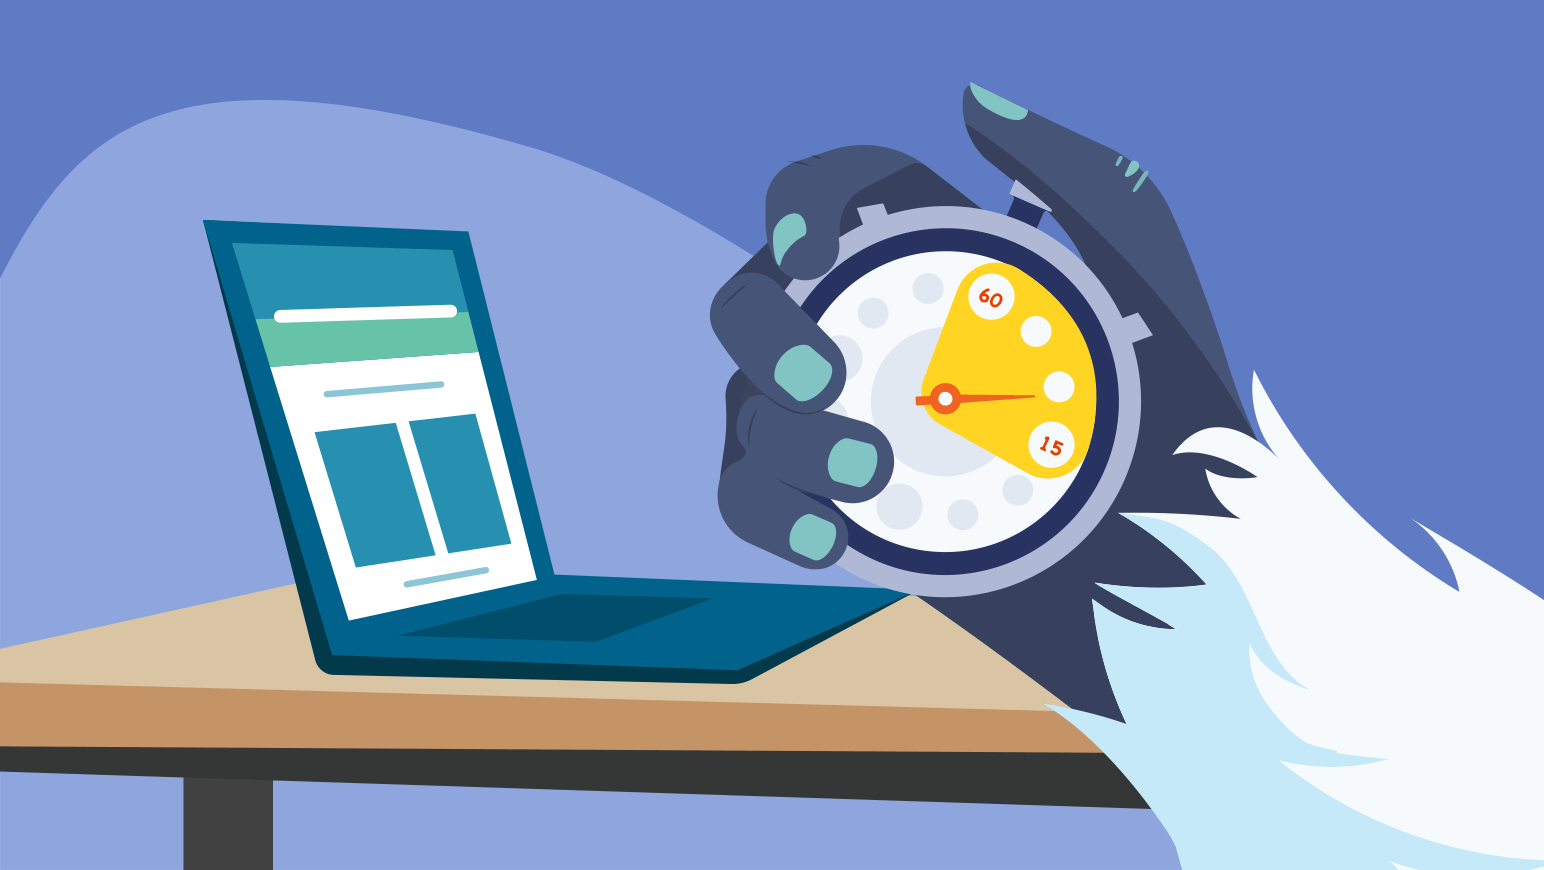 An illustration of a yeti hand holds a stopwatch, showing how WordPress software allows for fast page speeds.